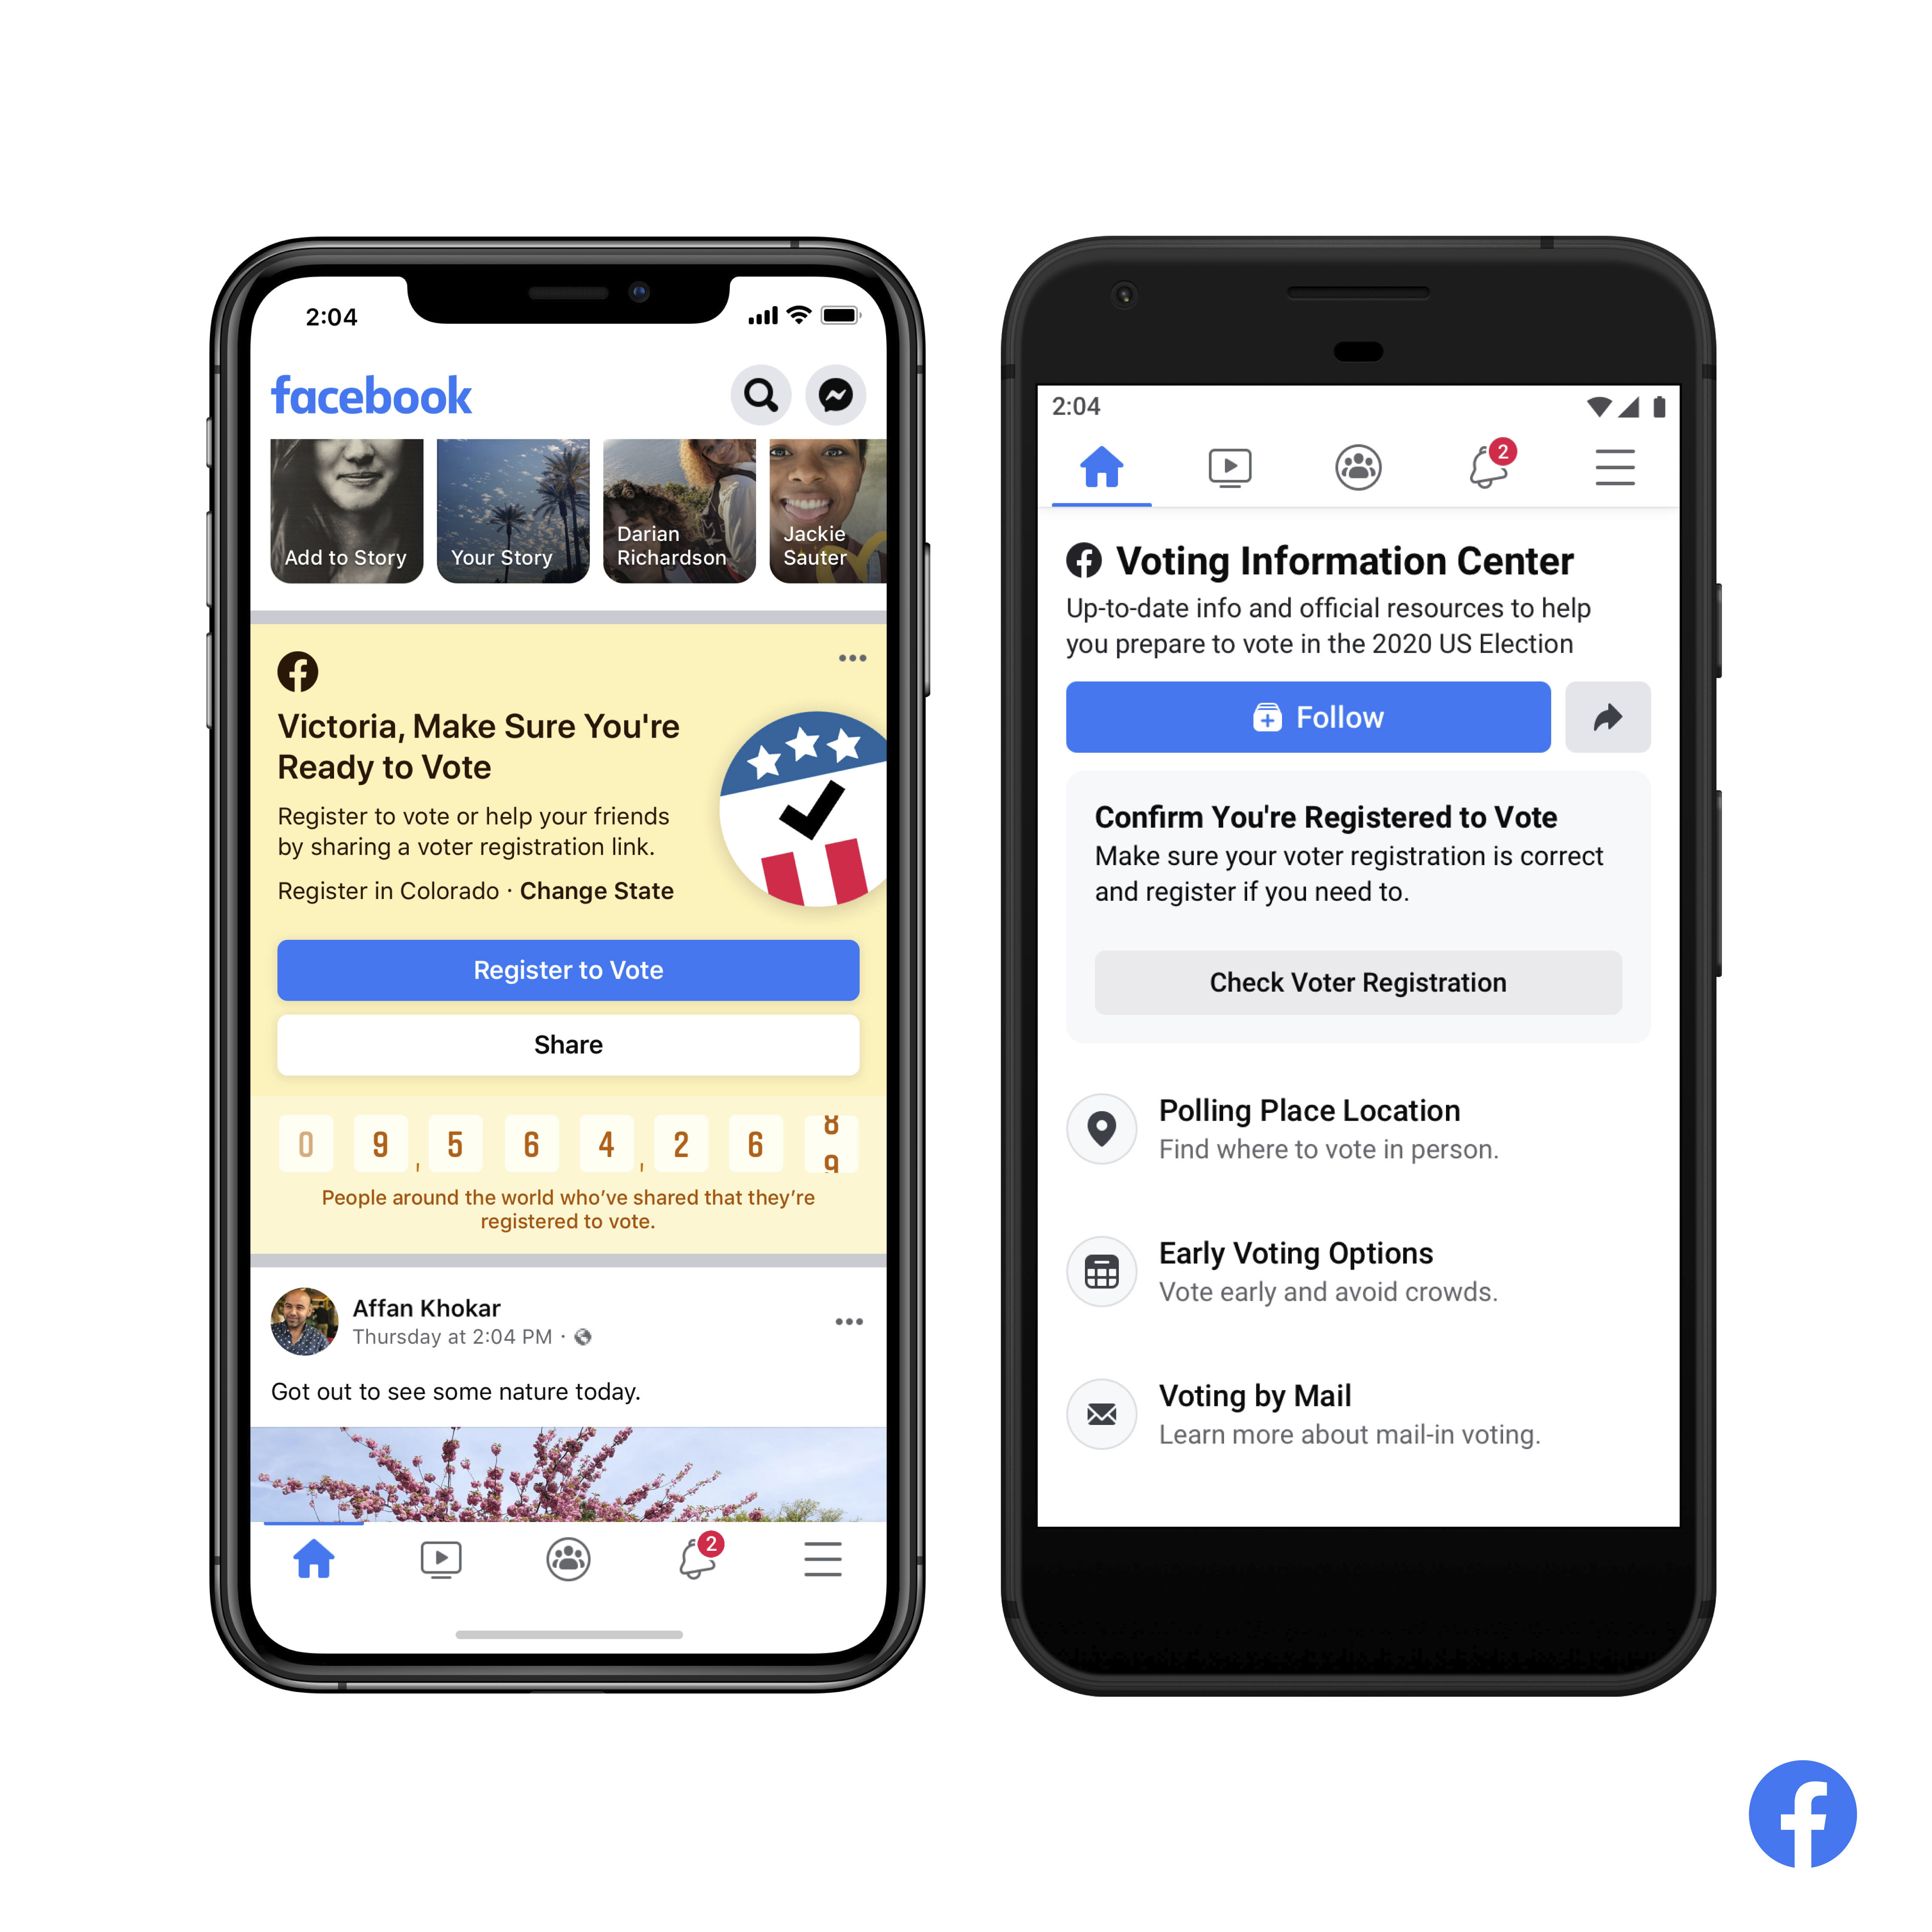 This image provided by Facebook shows screens of its Voting Information Center.